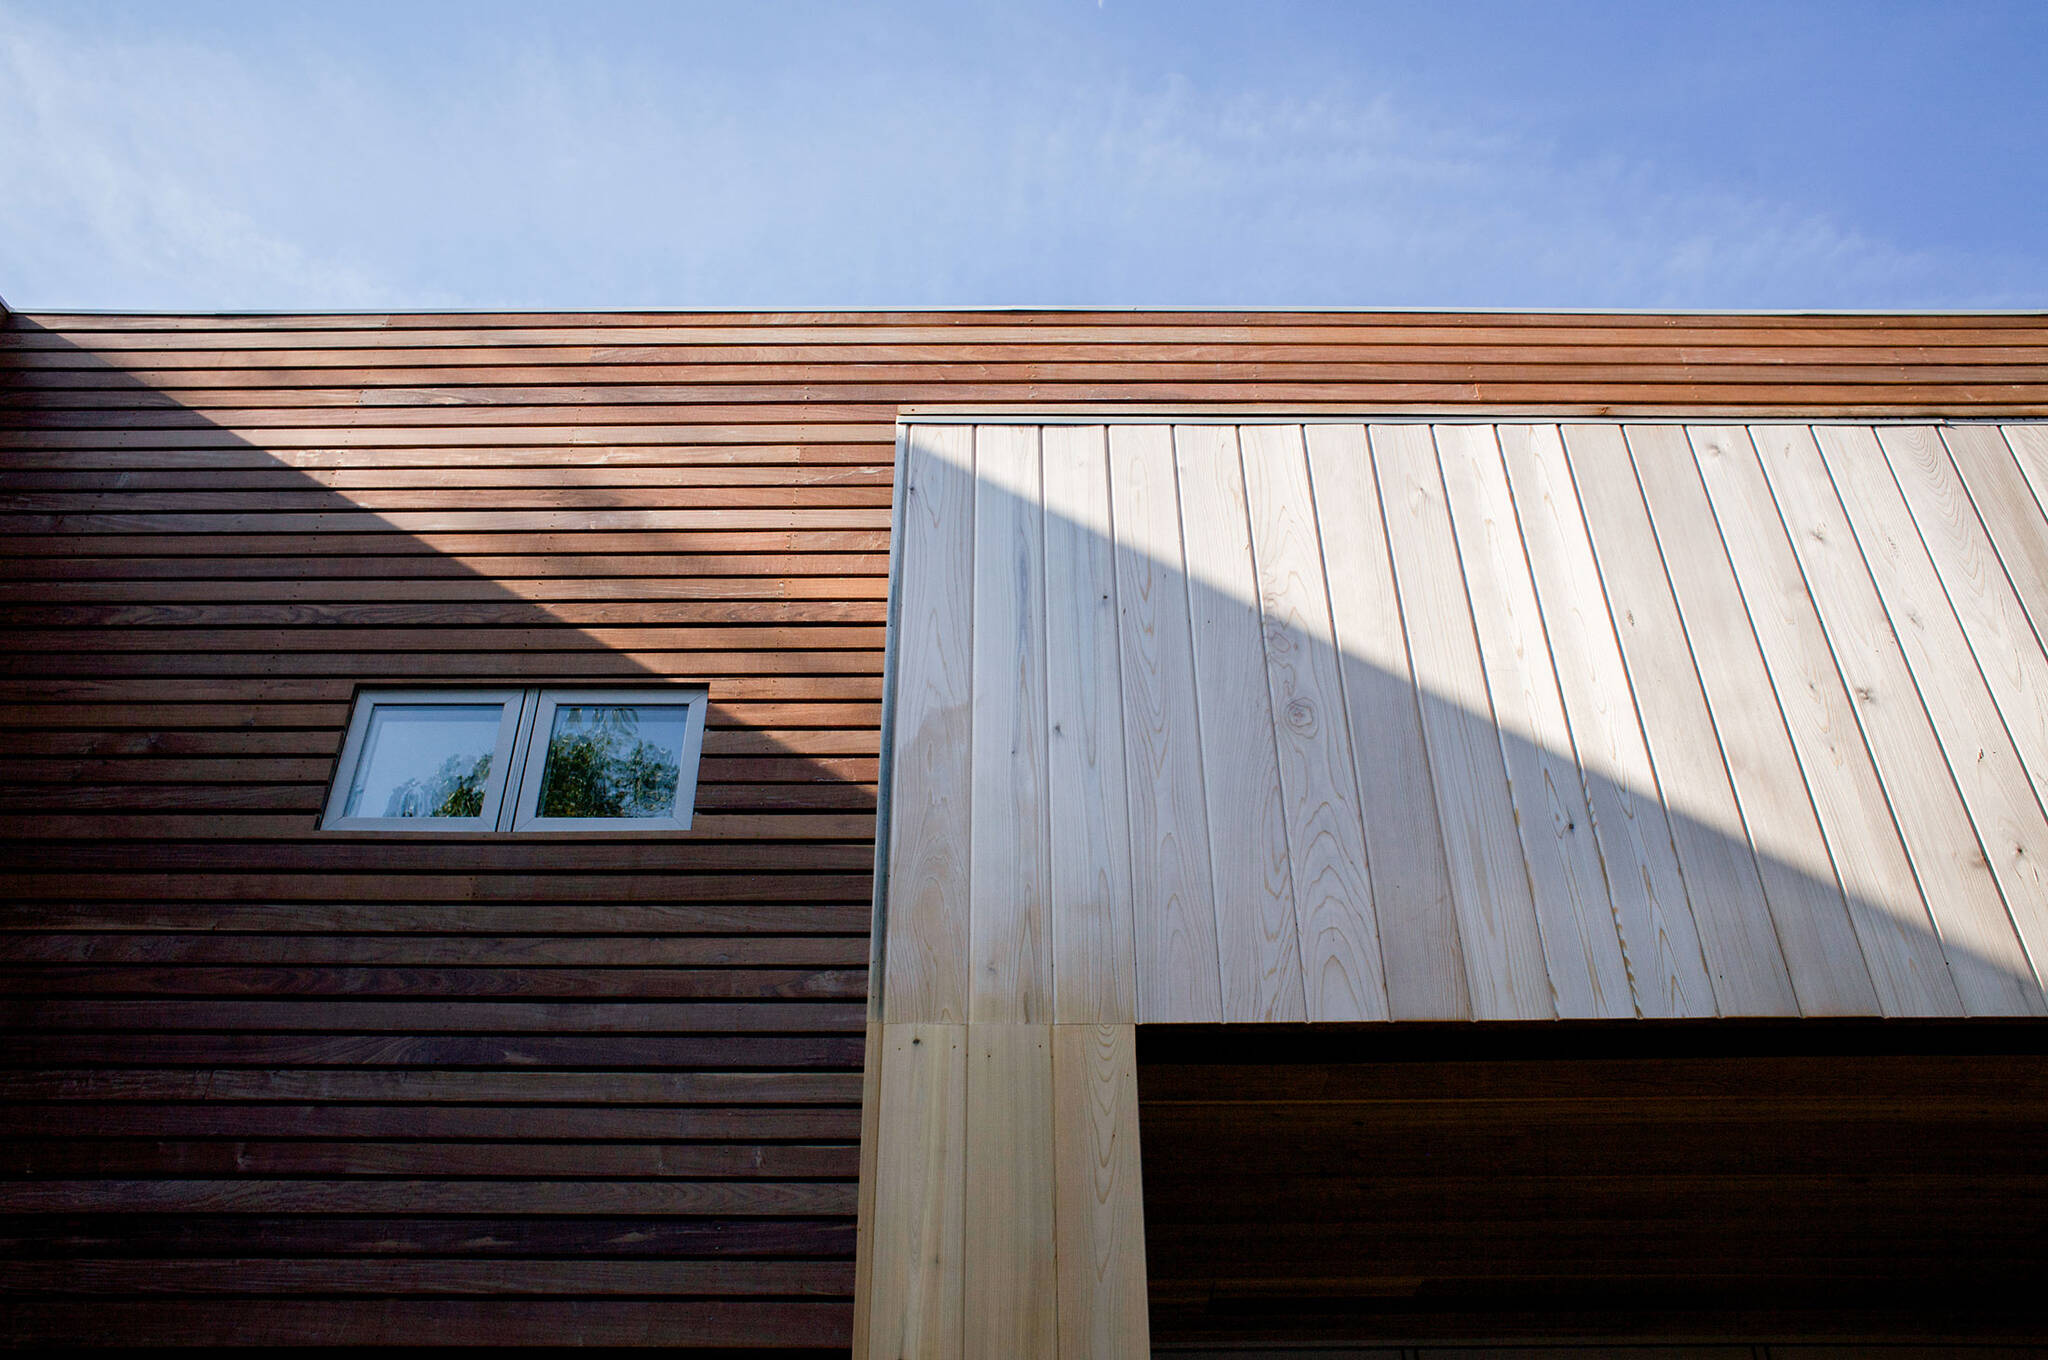 Vertical cedar siding and Horizontal IPE Brazilian walnut rainscreen cladding of the sustainable lake house project in Omena, Michigan designed by the architecture studio Danny Forster & Architecture